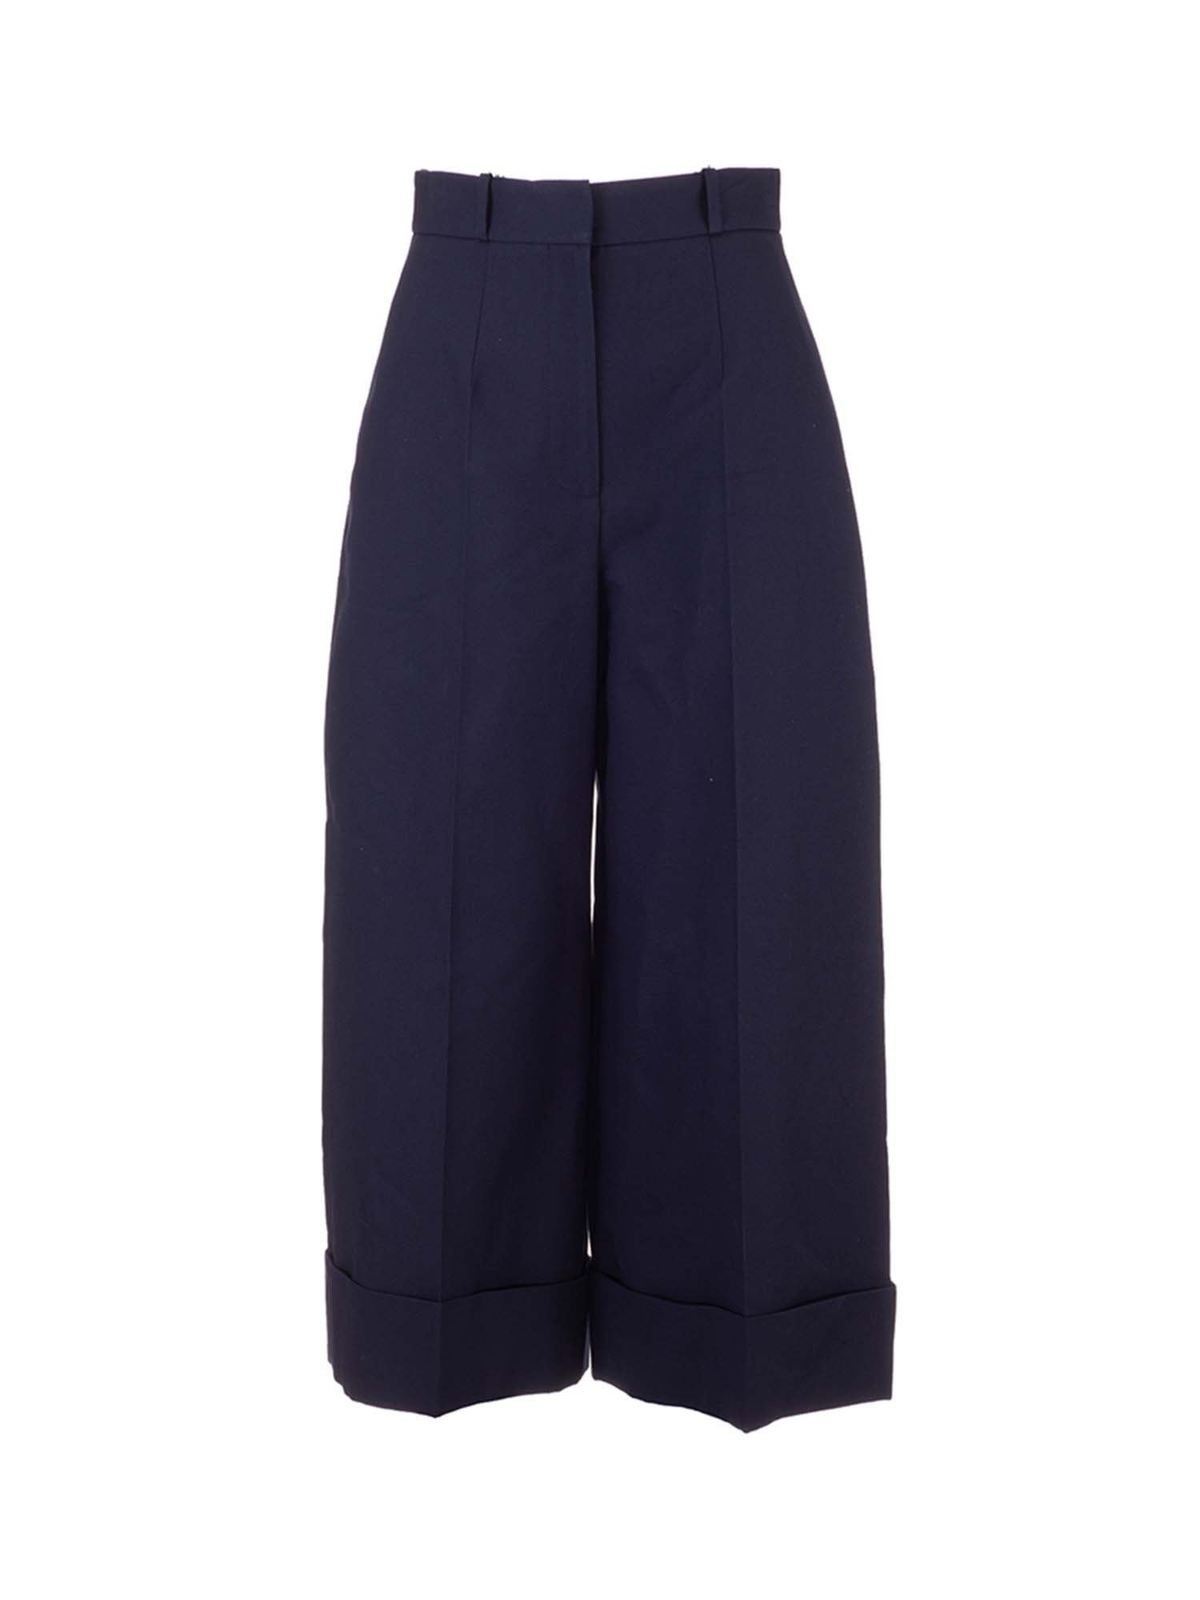 Alexander Mcqueen Downs HIGH-WAISTED TROUSERS IN BLUE